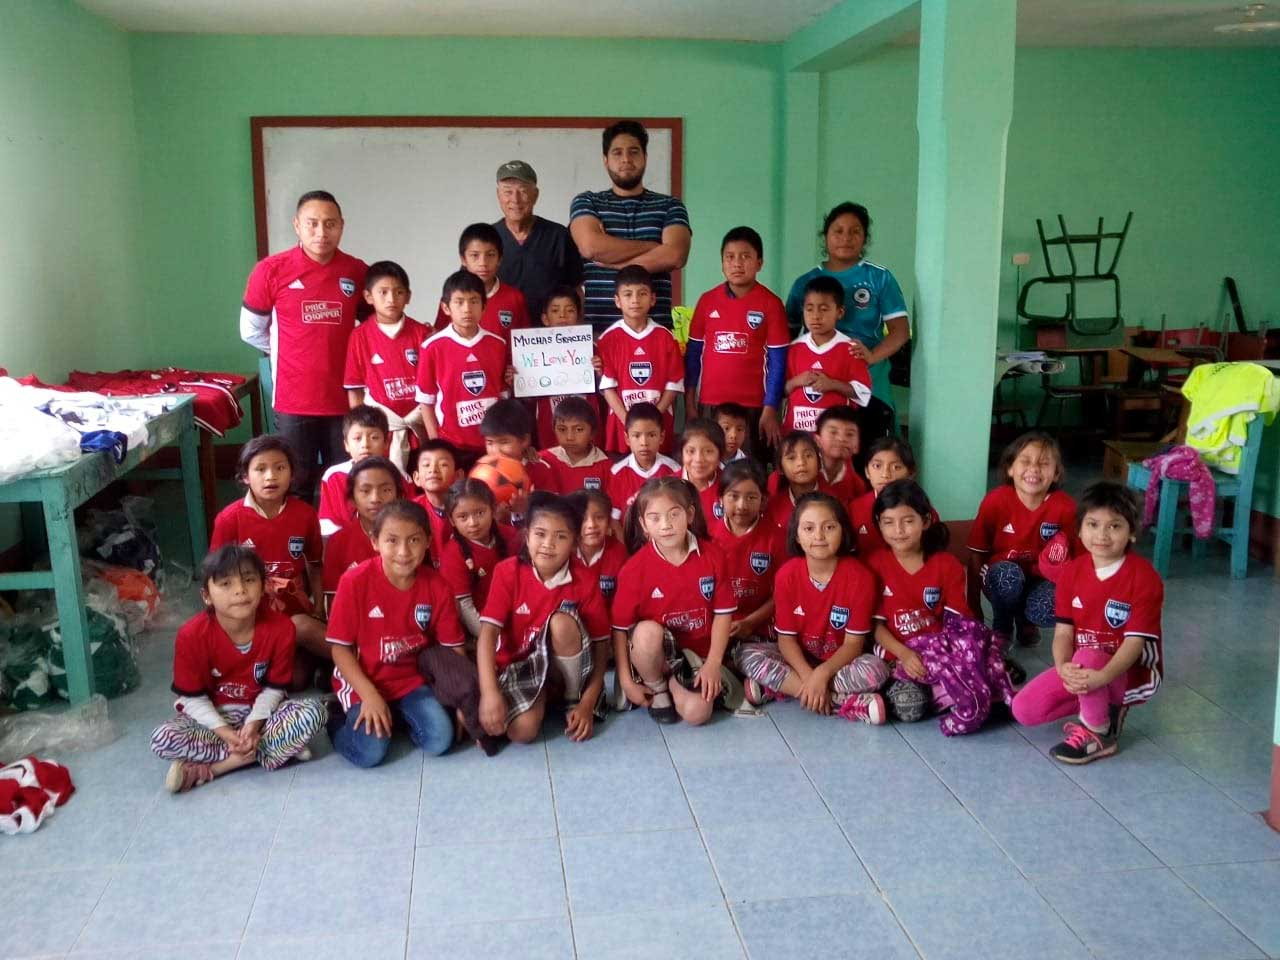 A donation of sports shirts to Manos Amigas